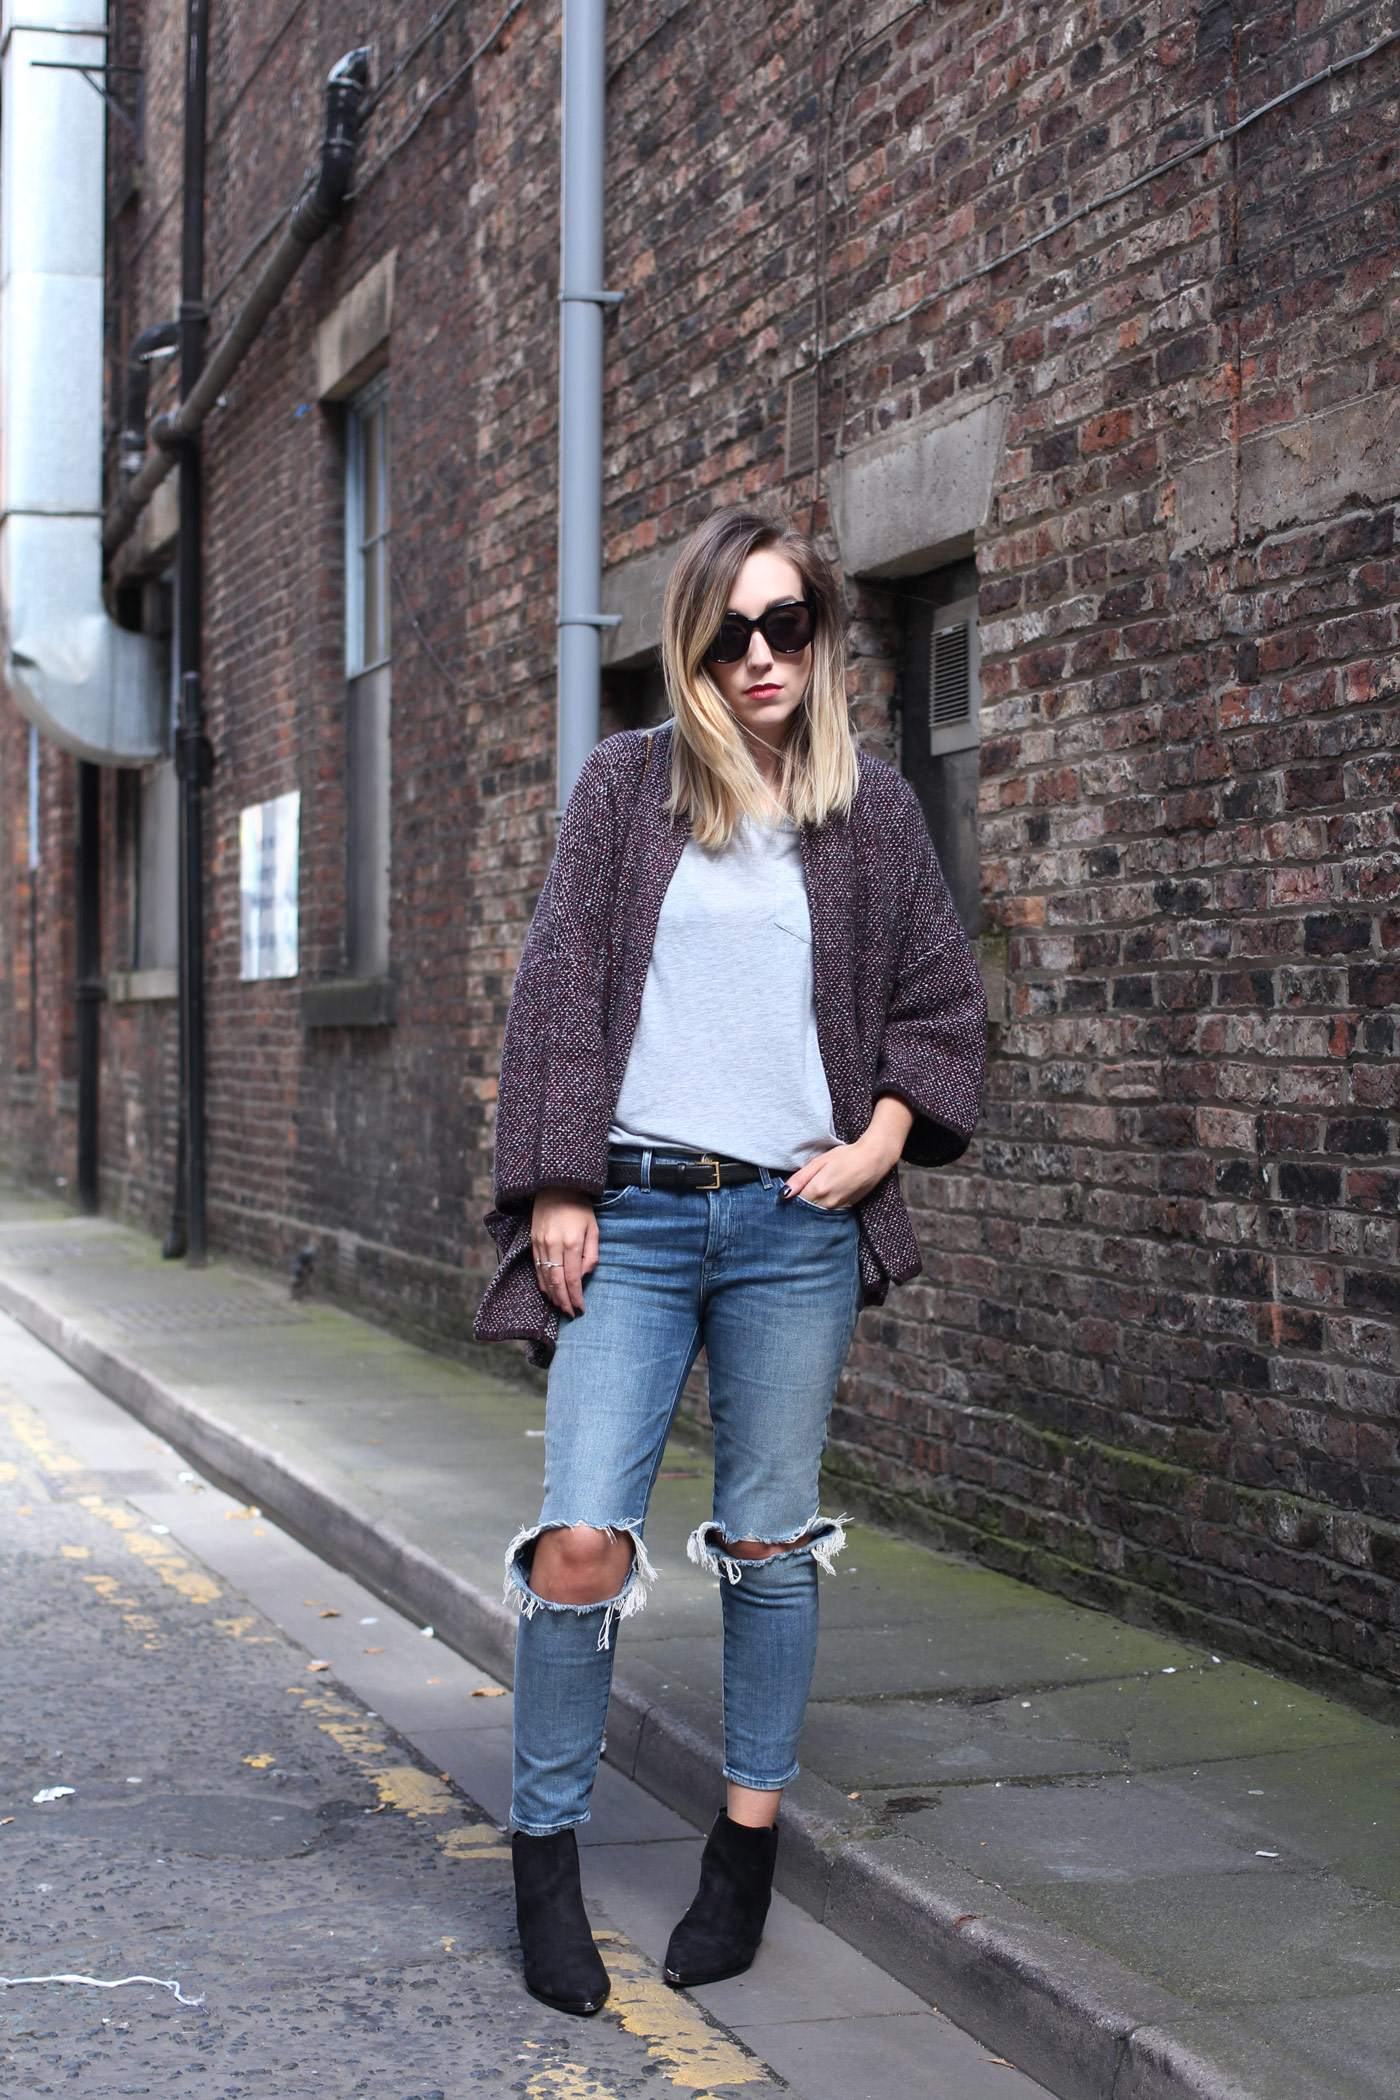 mango-cardigan-acne-jensen-boots-ripped-jeans-autumn-outfit